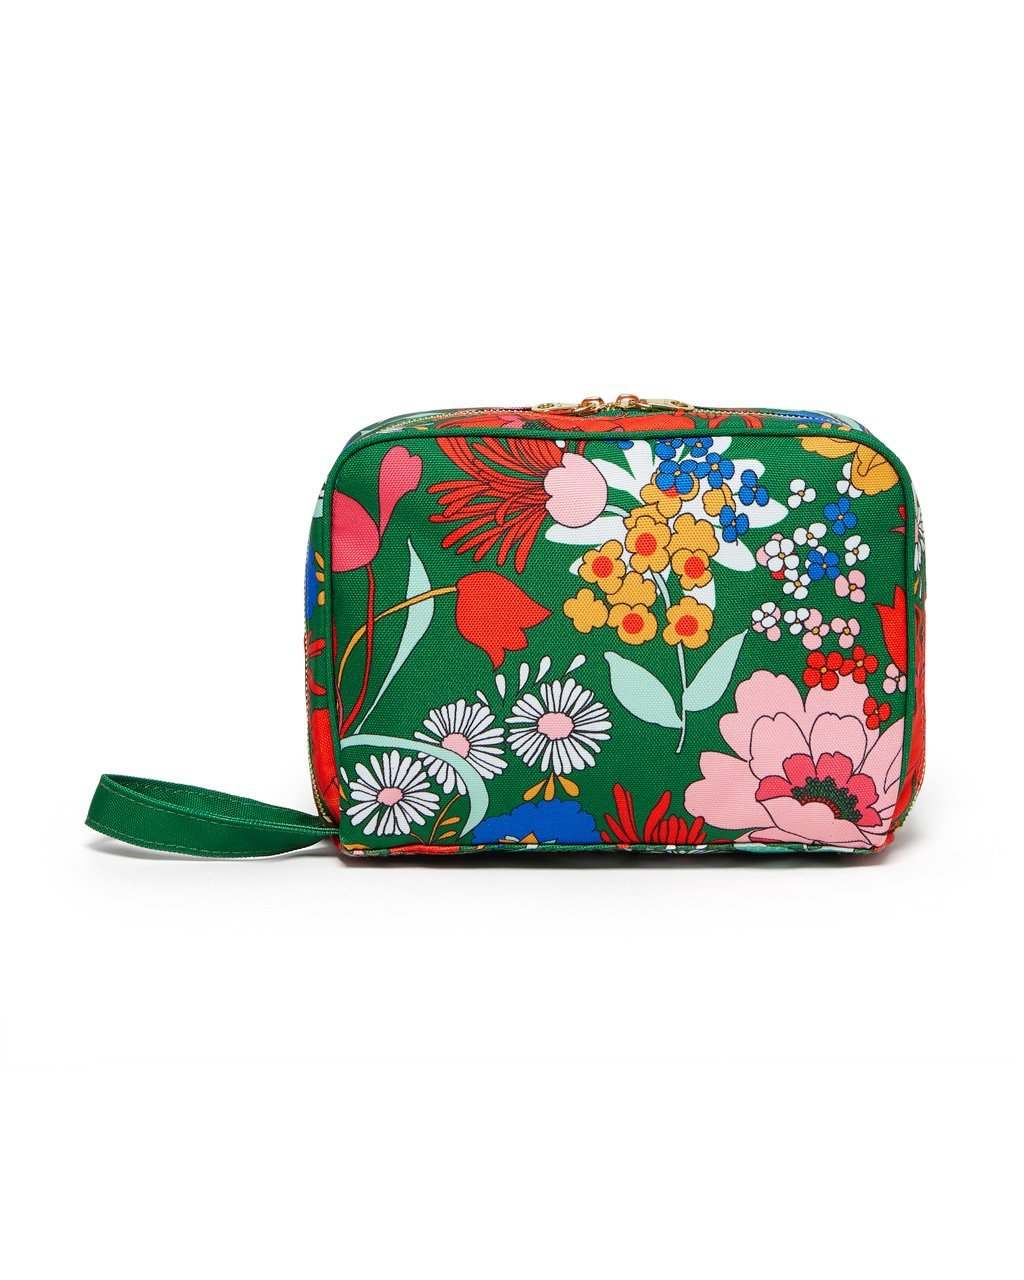 Emerald green toiletry bag with bright floral pattern.